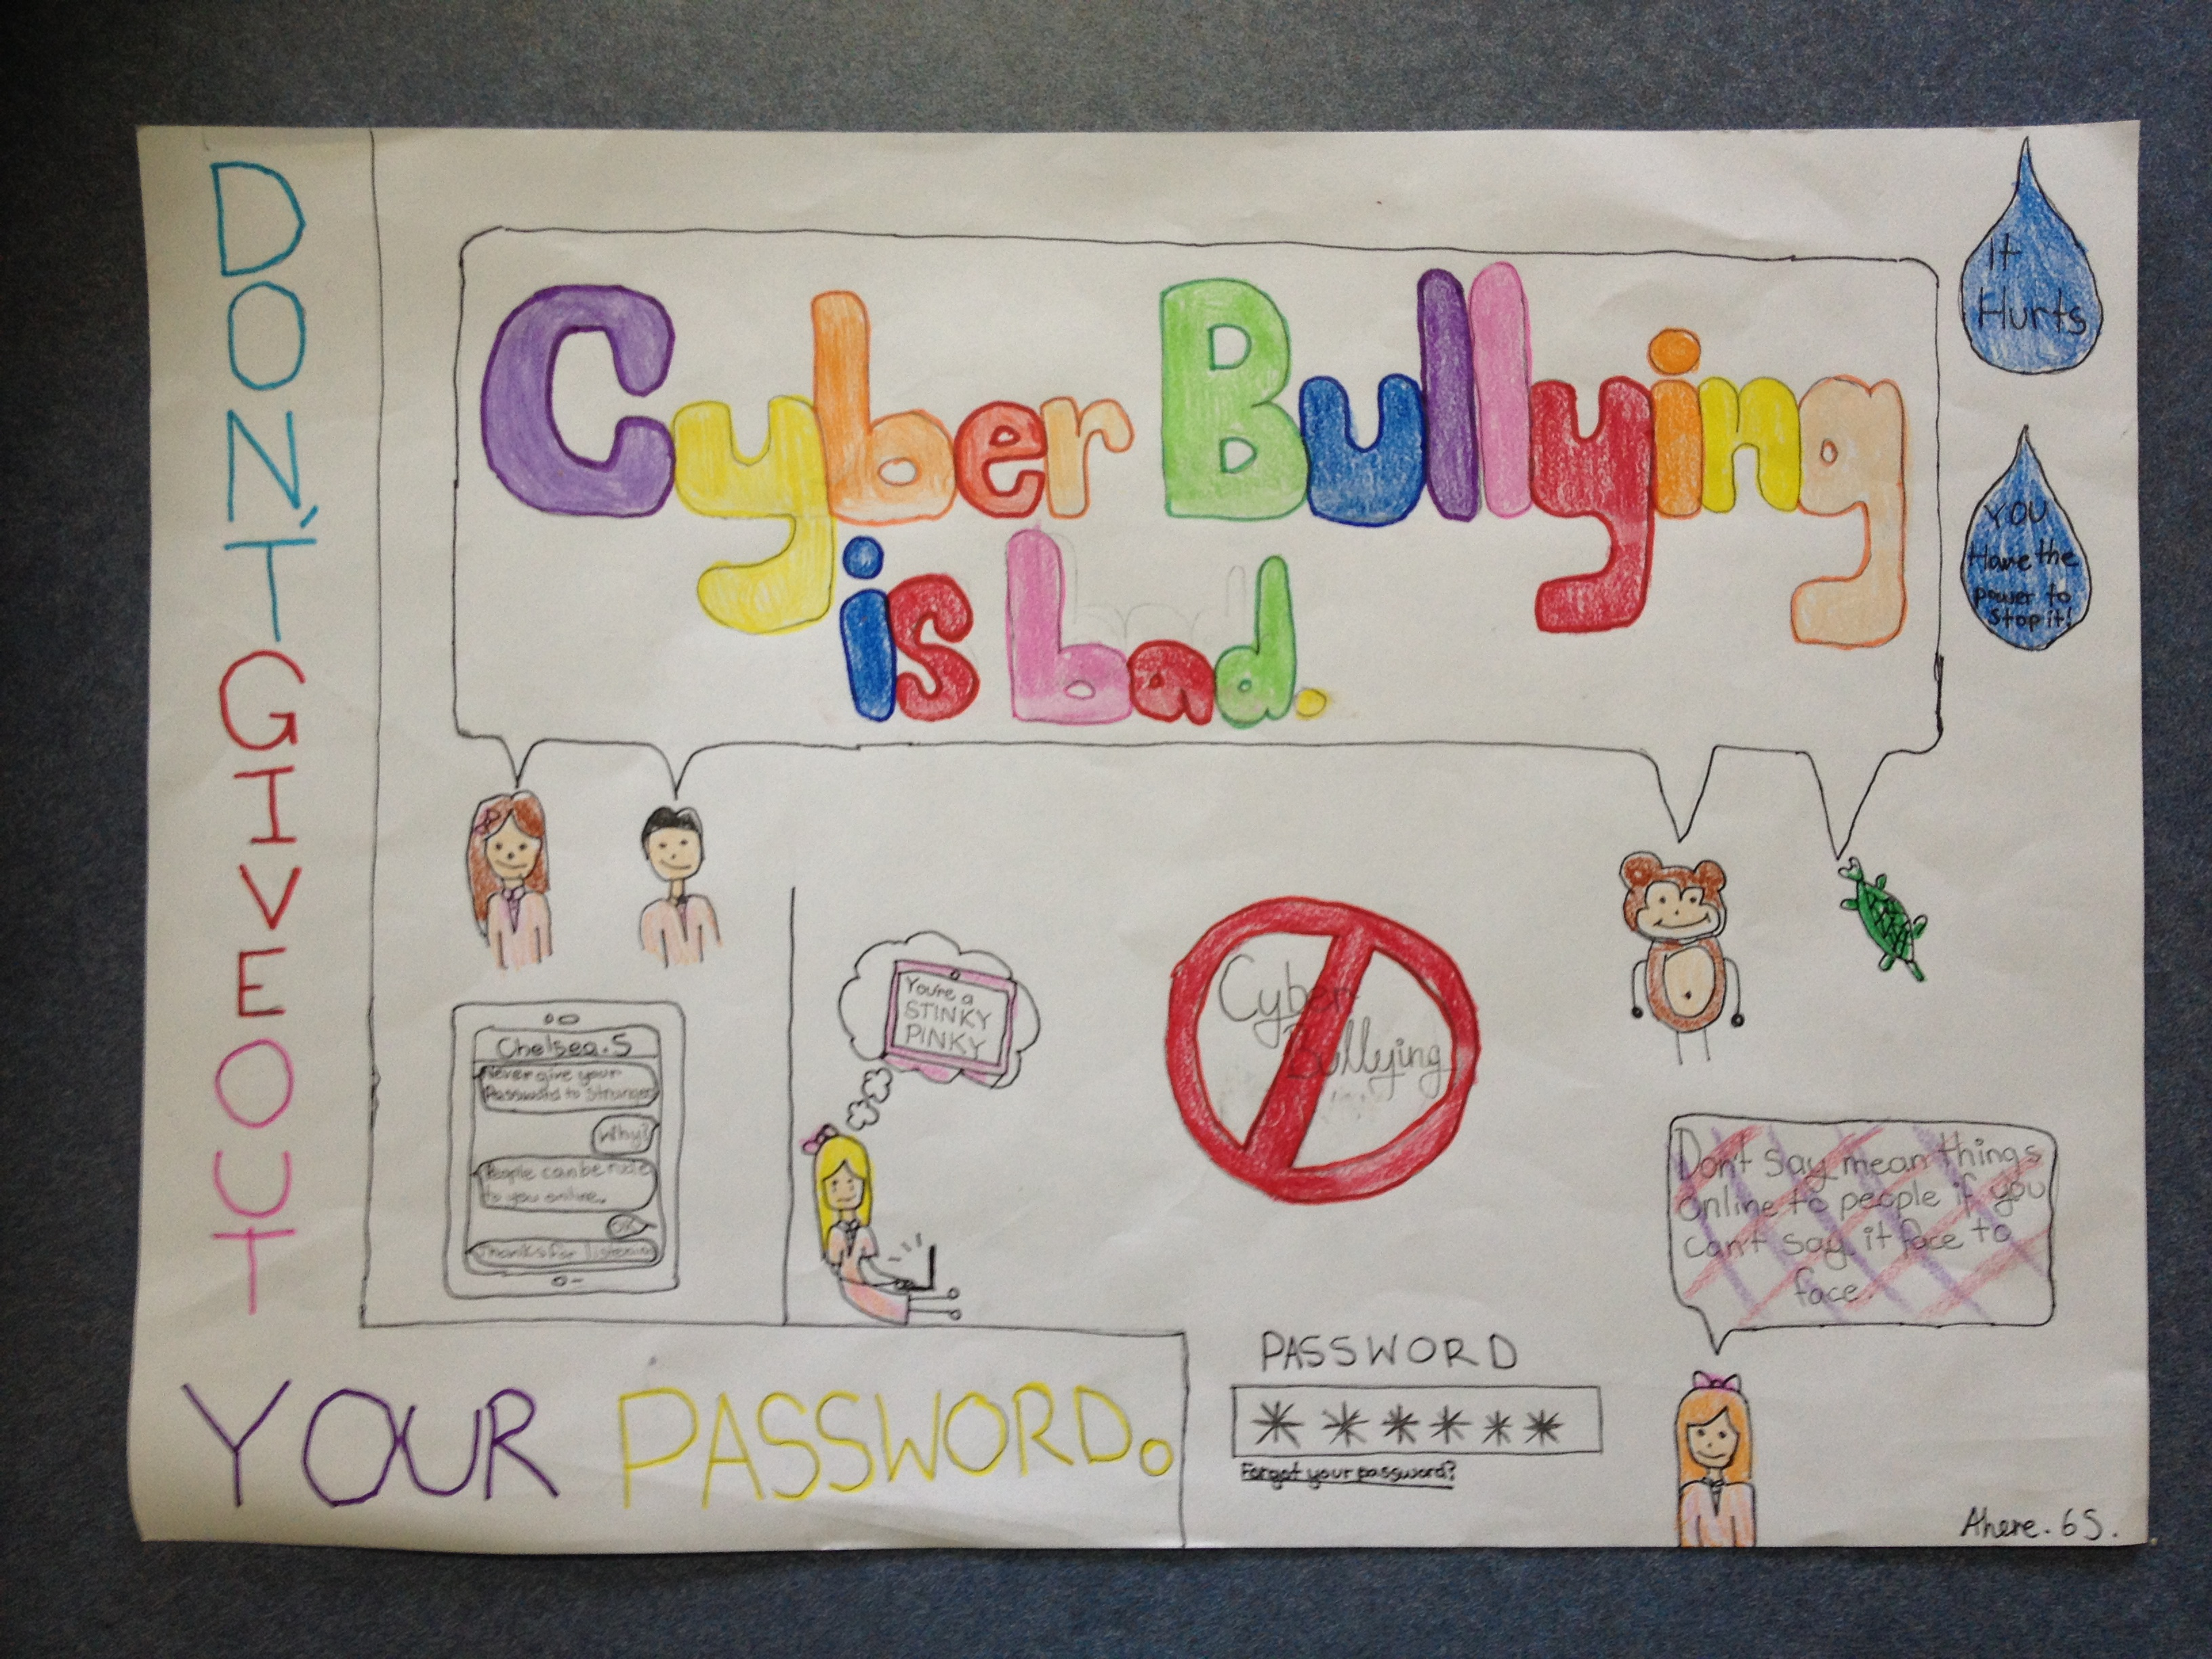 Drawn poster cyberbullying Archive » 5 Poster Bloggers